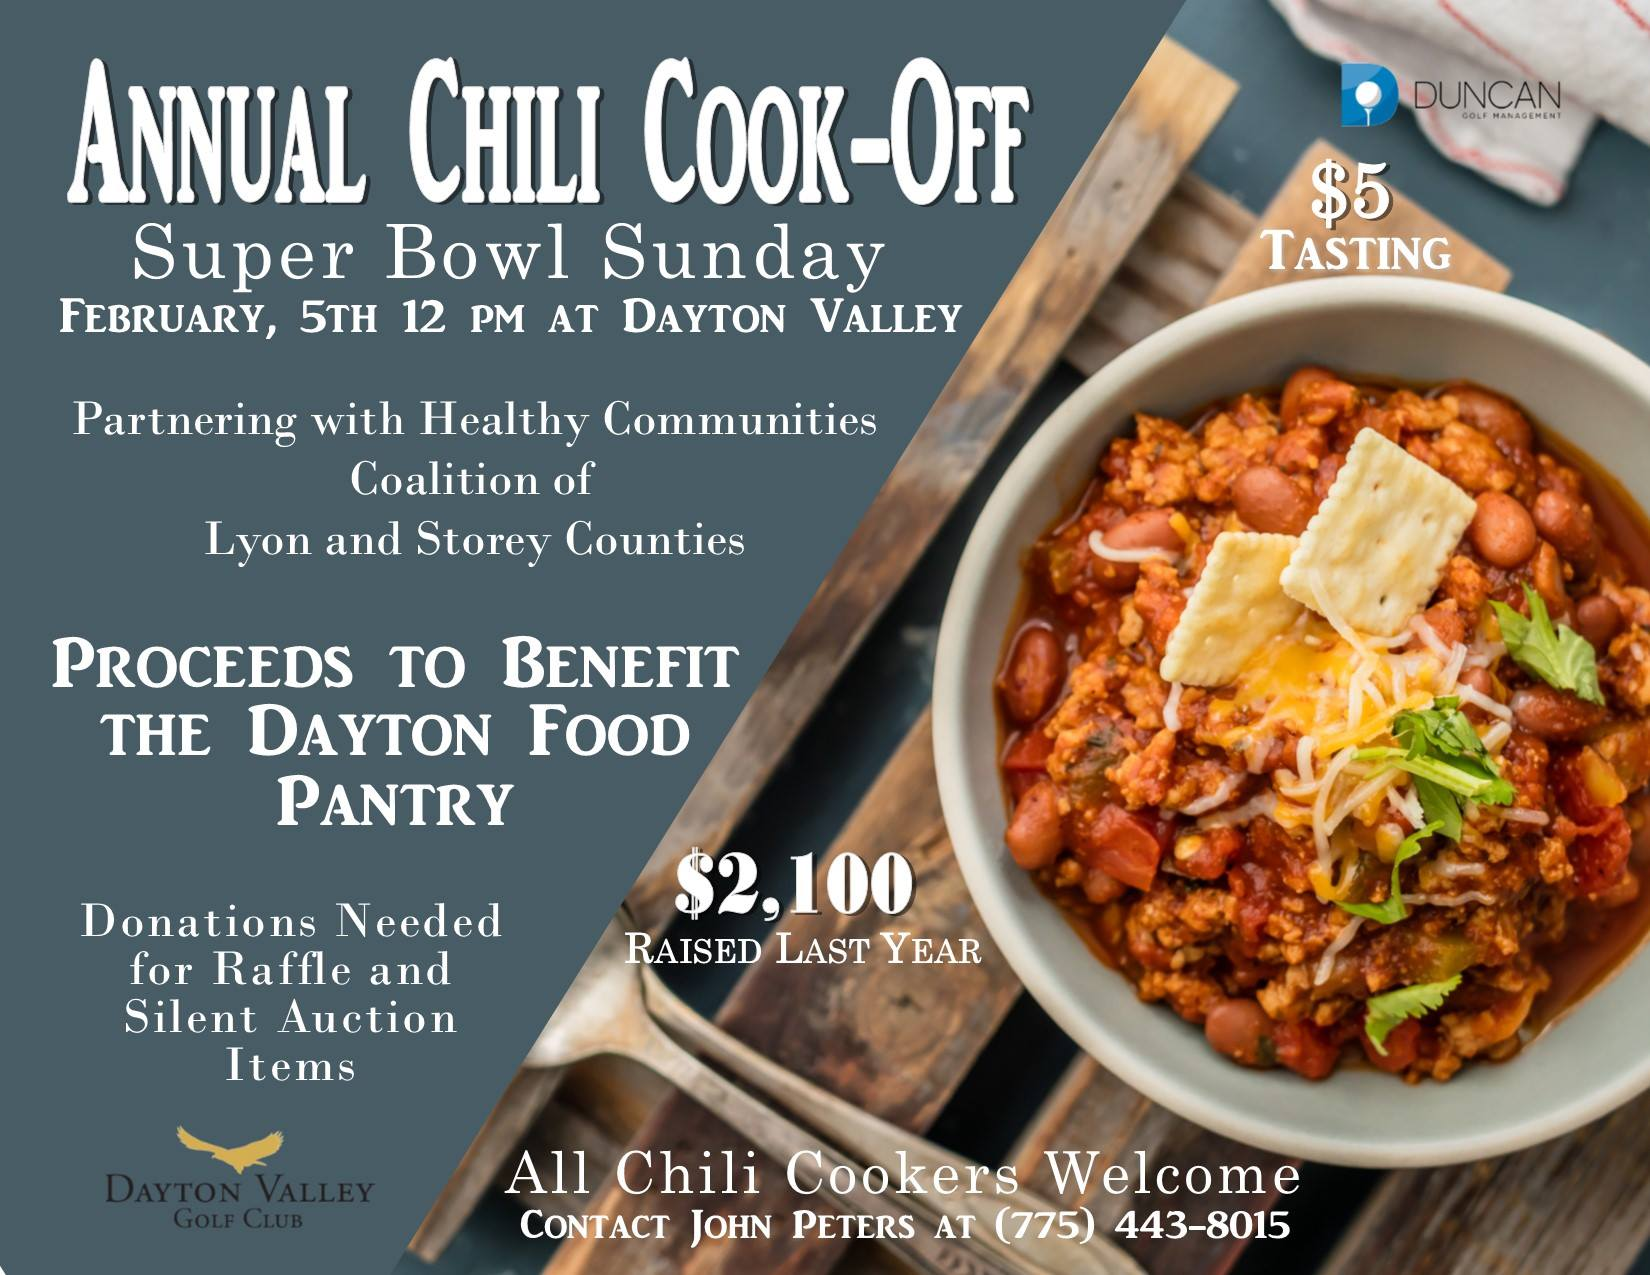 chili cookoff and superbowl party benefits food pantry